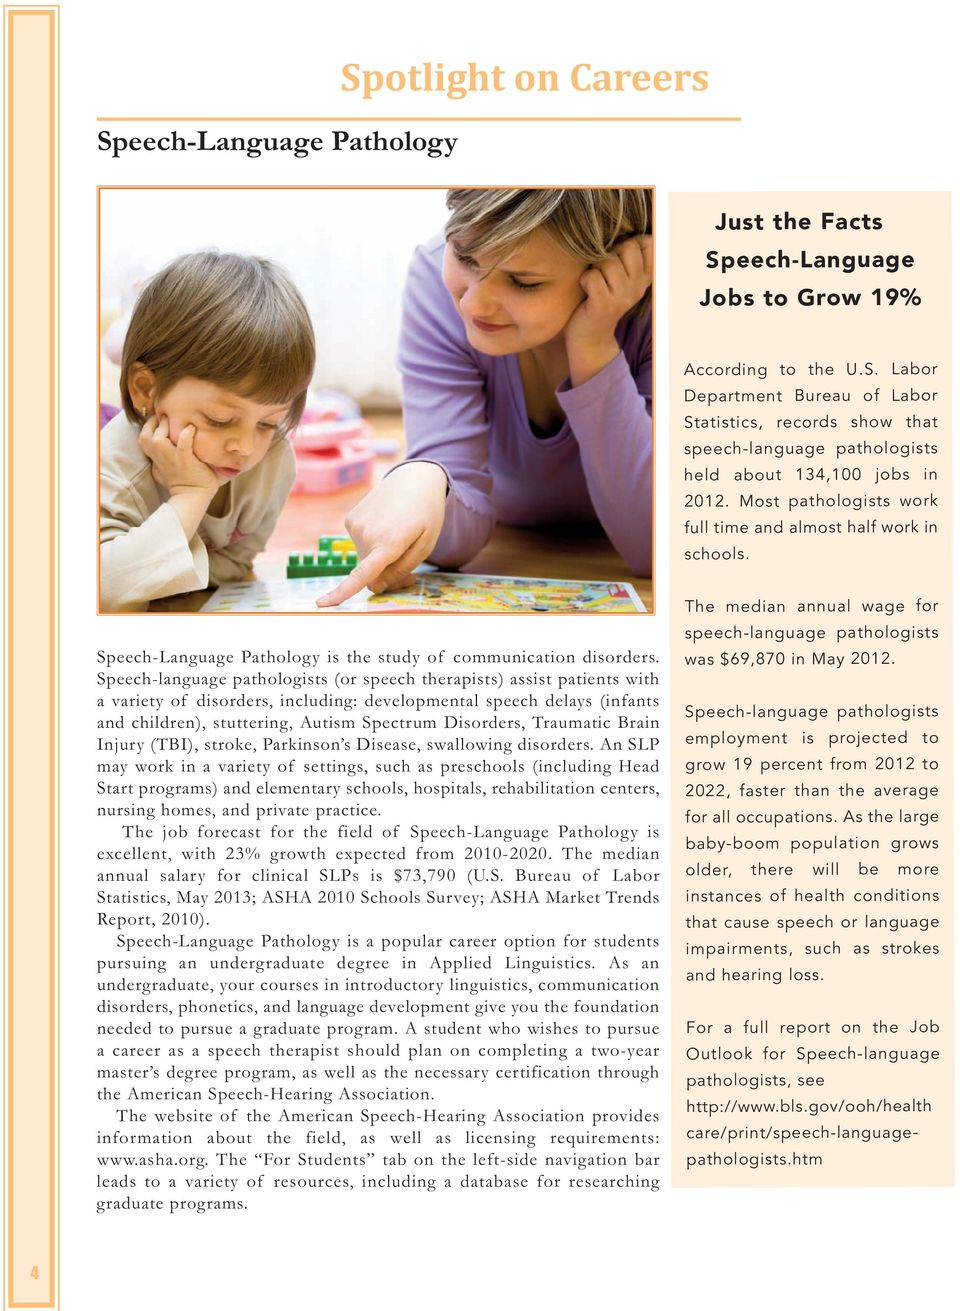 Speech-language pathologists (or speech therapists) assist patients with a variety of disorders, including: developmental speech delays (infants and children), stuttering, Autism Spectrum Disorders,